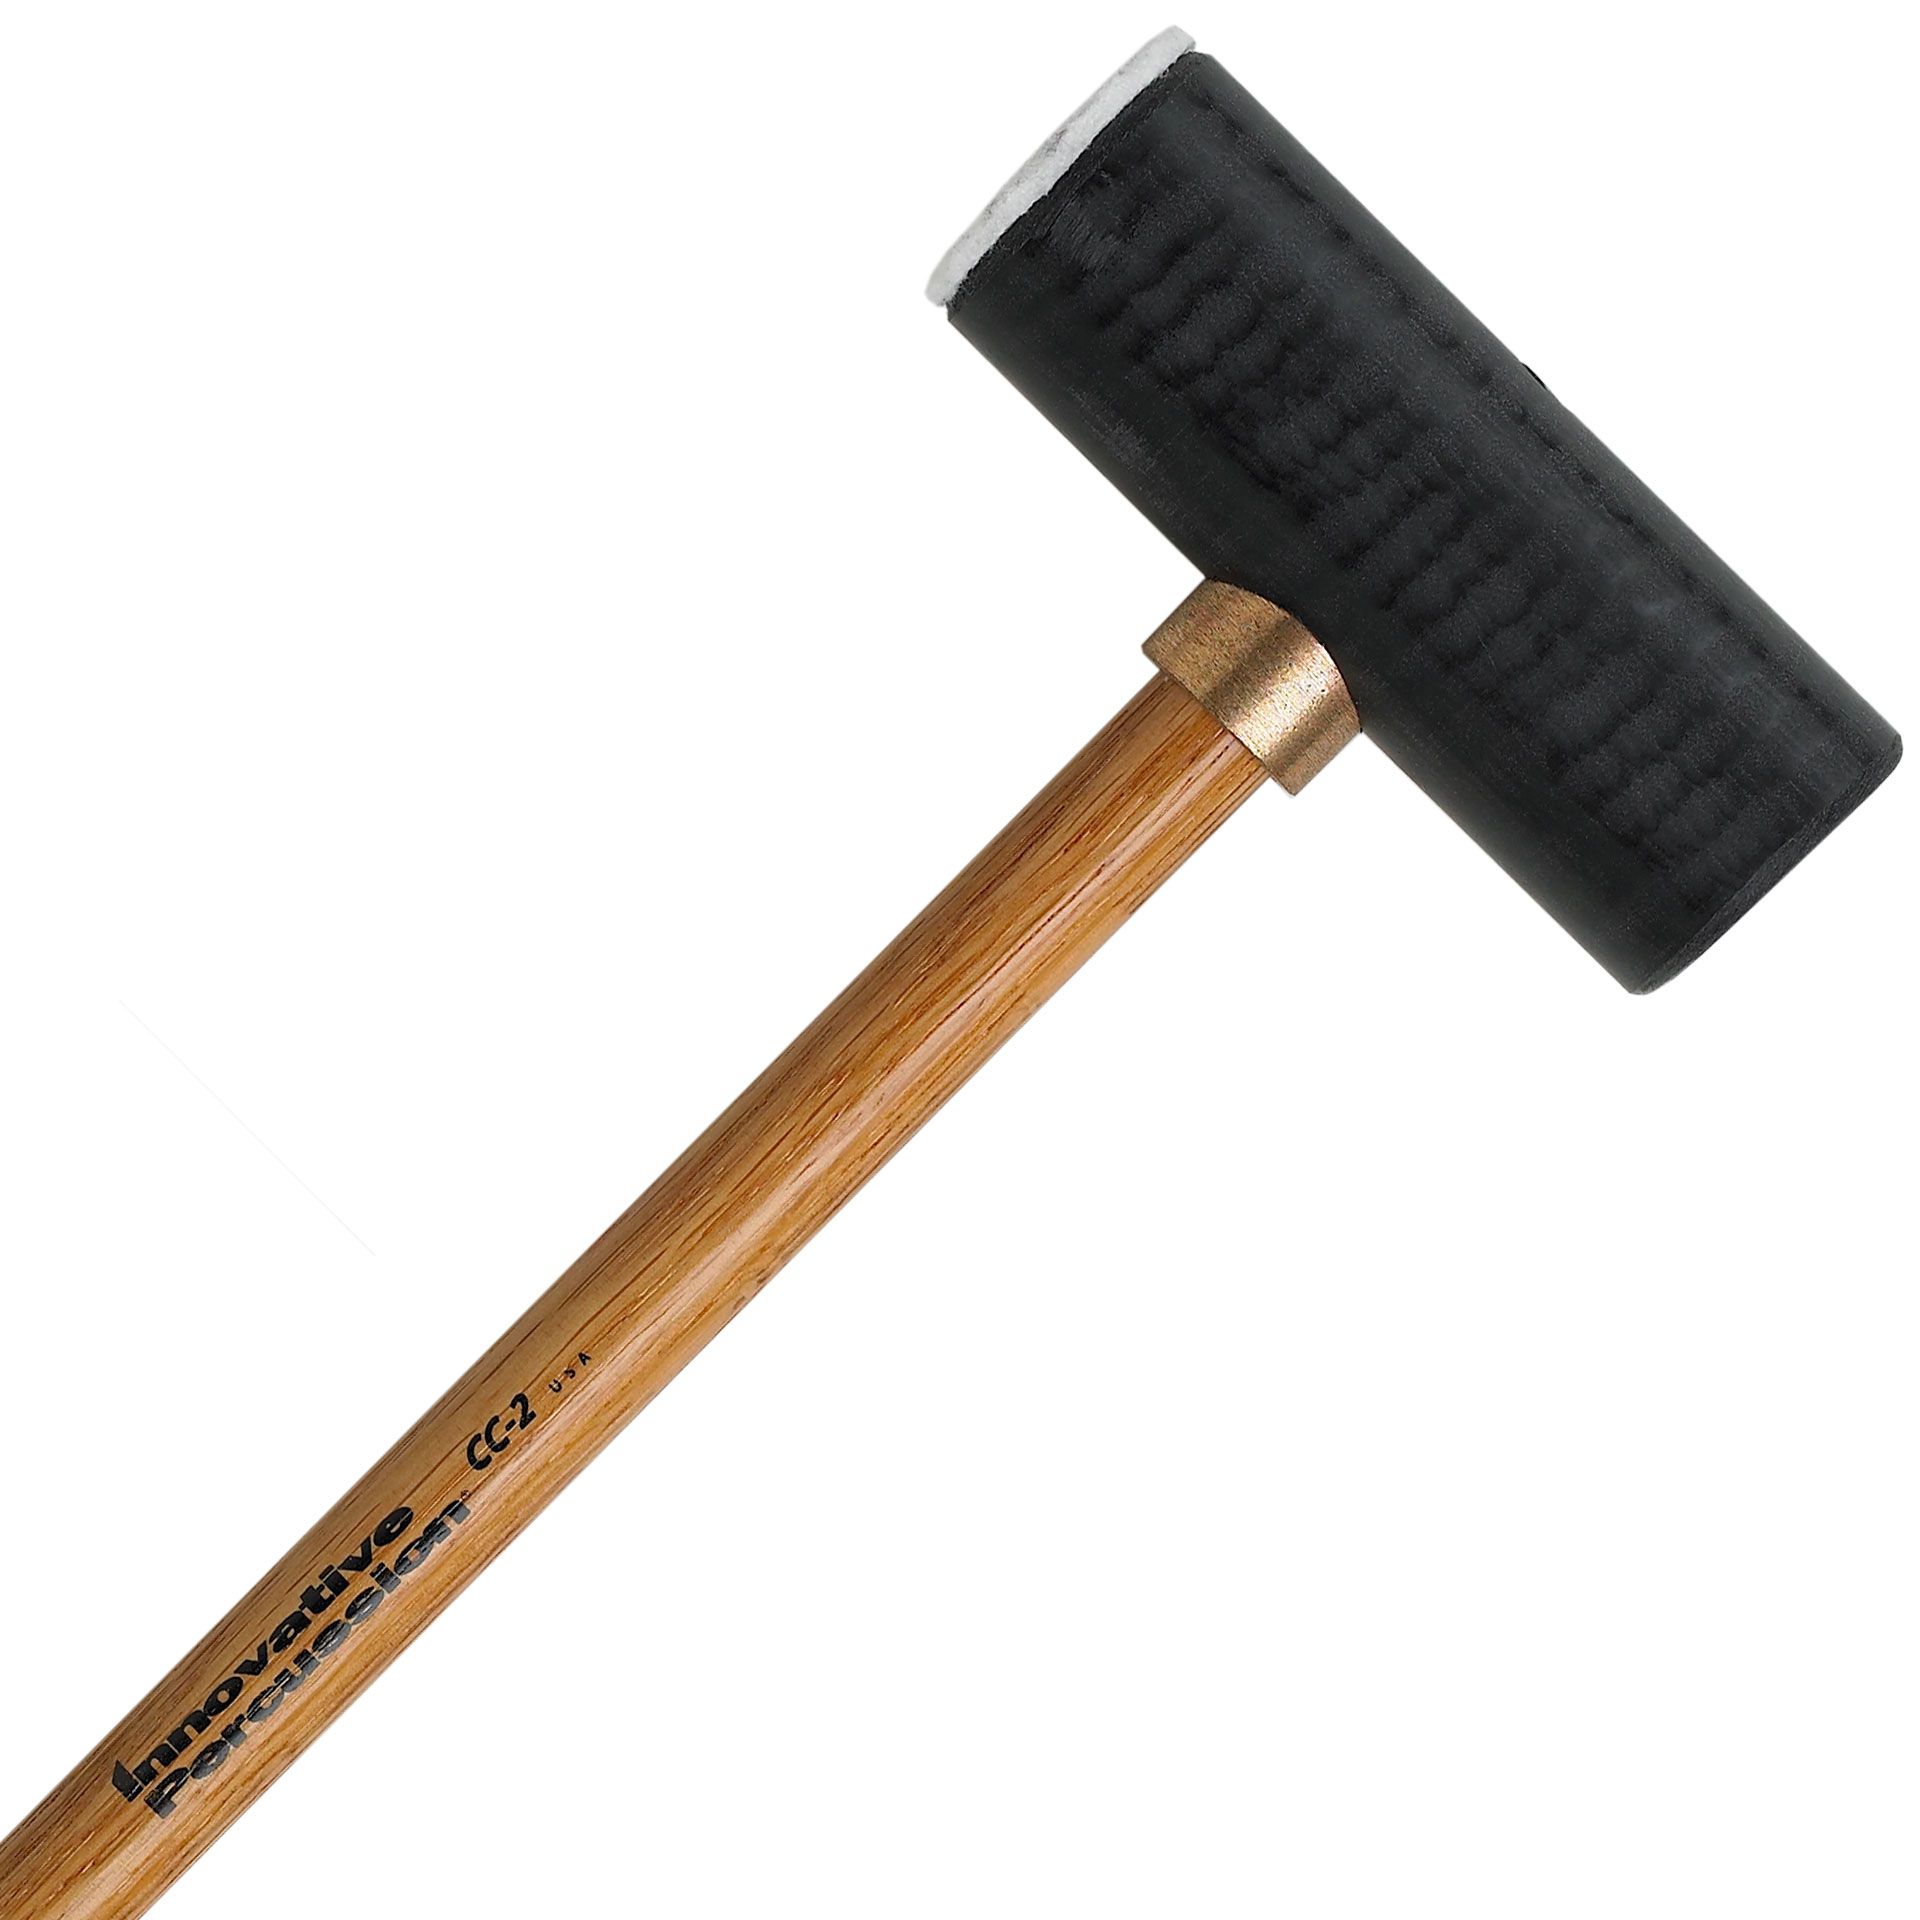 Innovative Percussion Medium Concert Chime Hammer